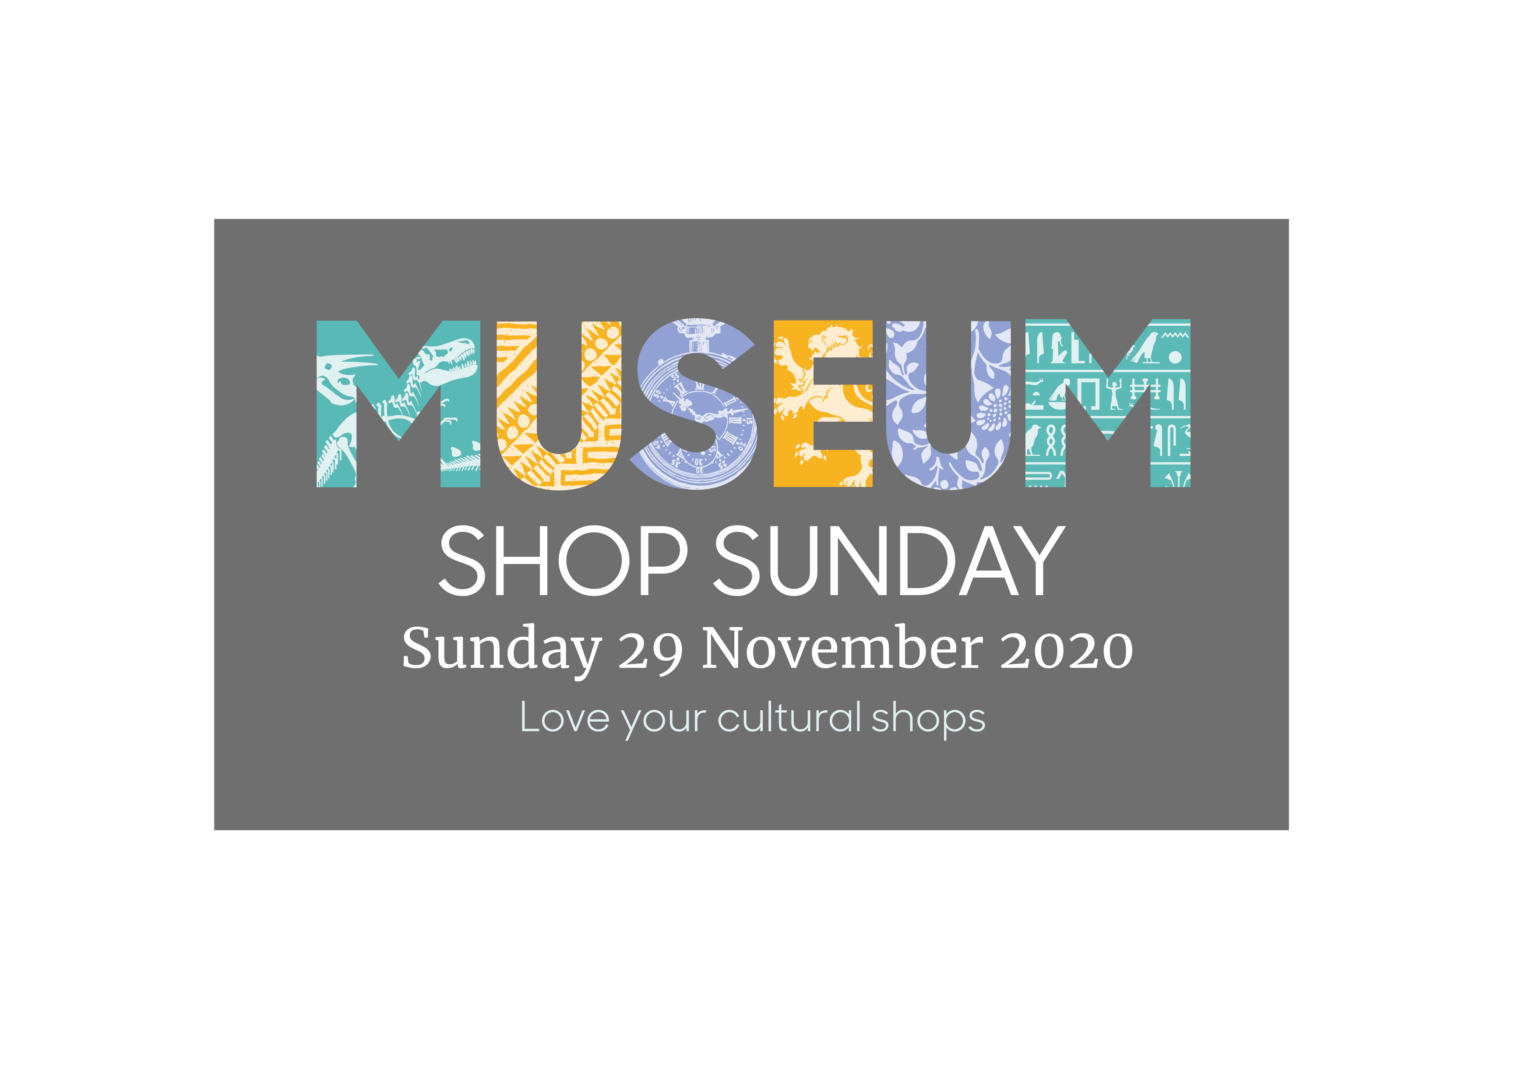 Museum Shop Sunday Coming Soon